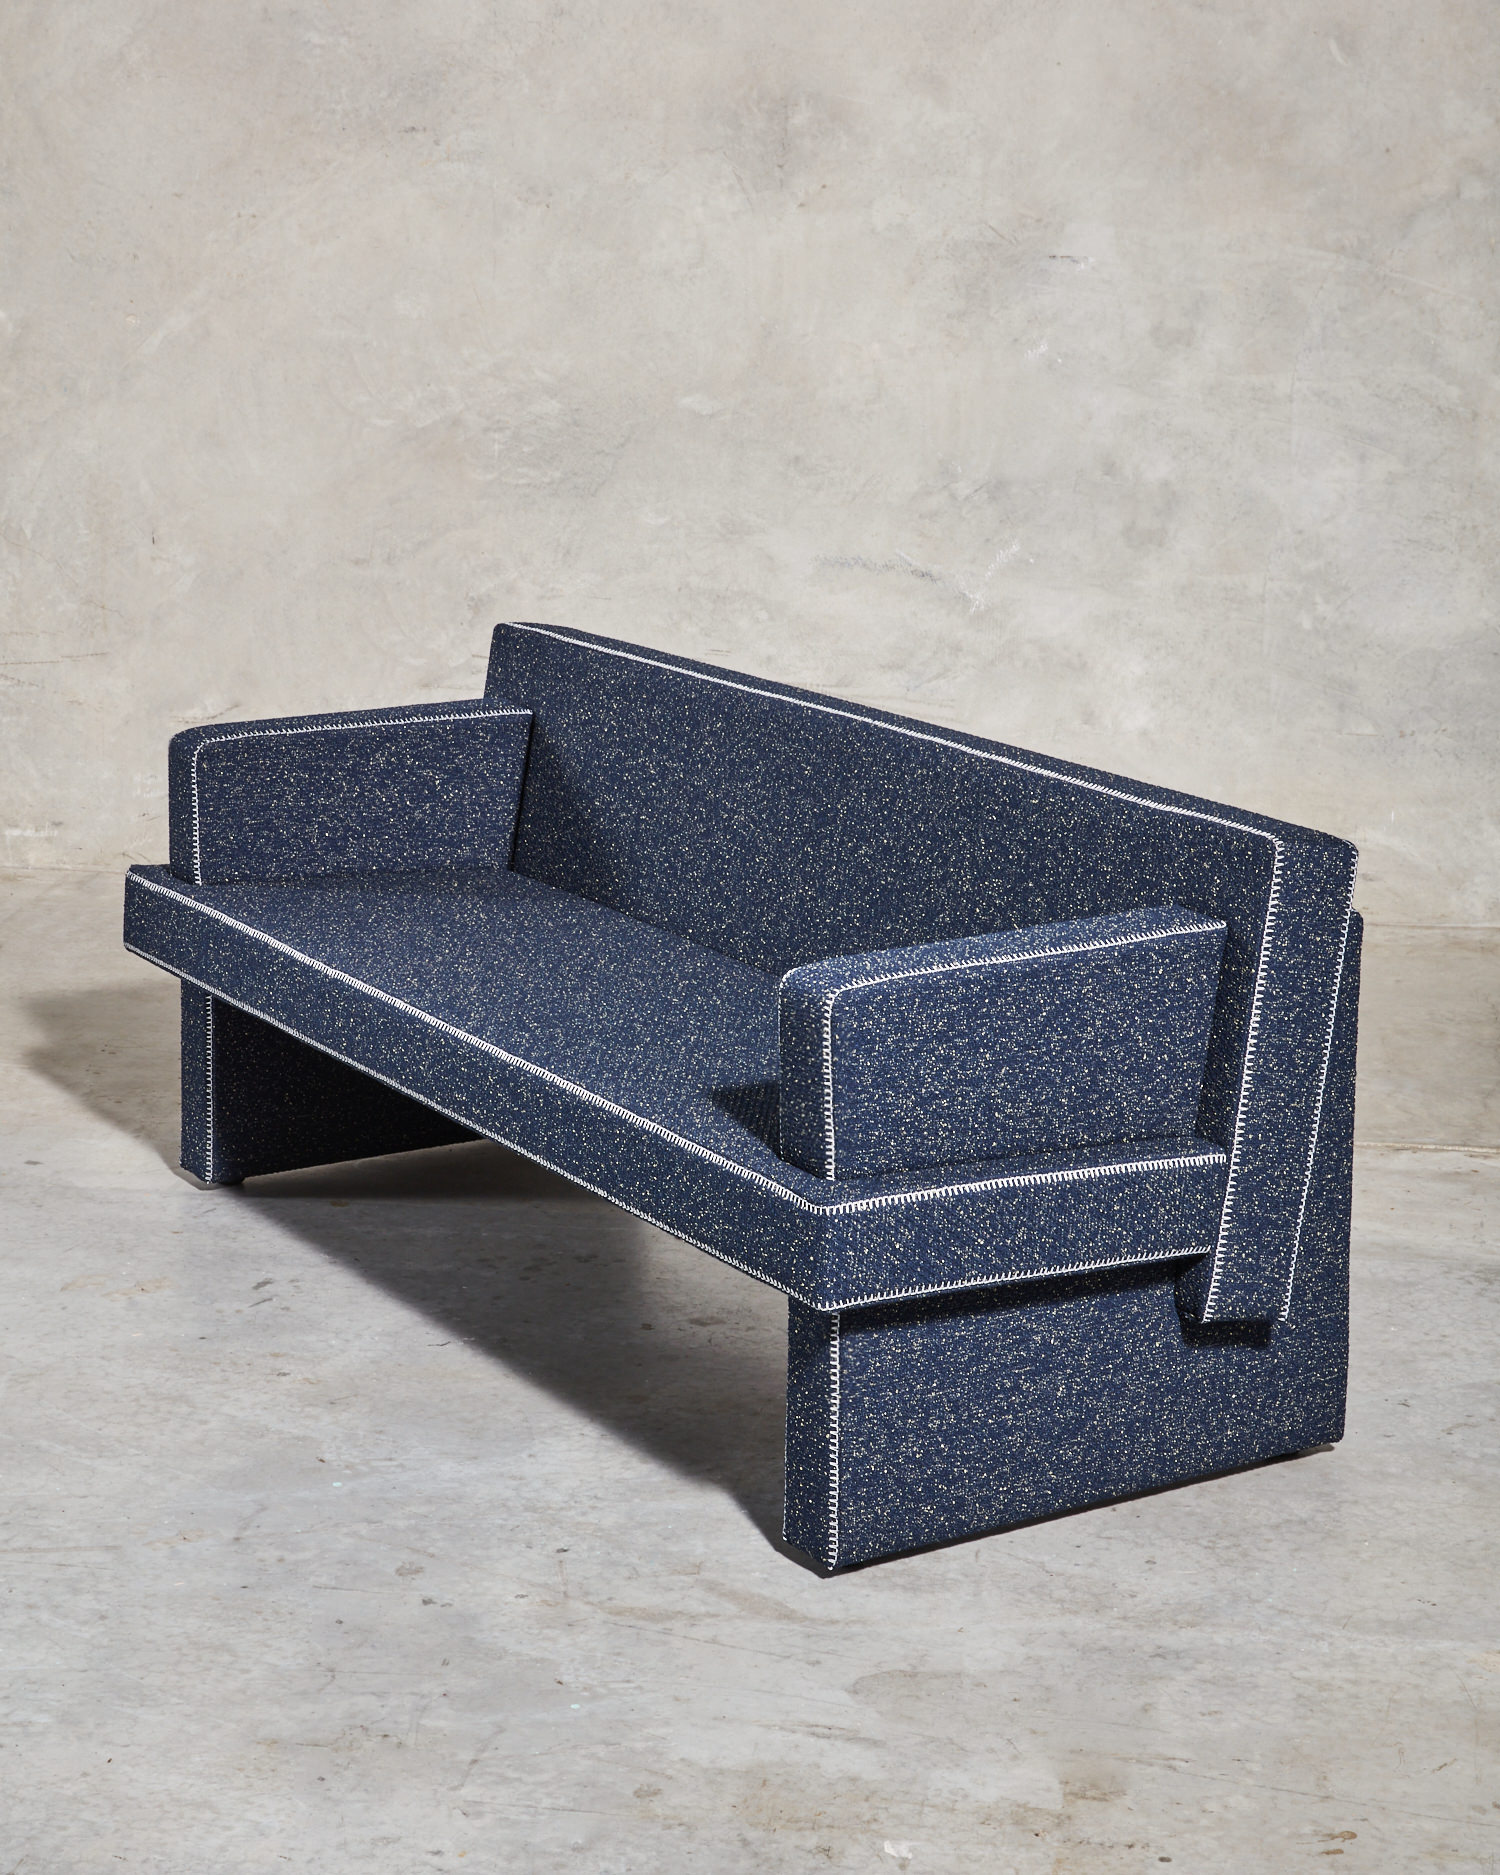 DesignByThem, August Lounge Collection by Gibson Karlo, Australian Design   Yellowtrace